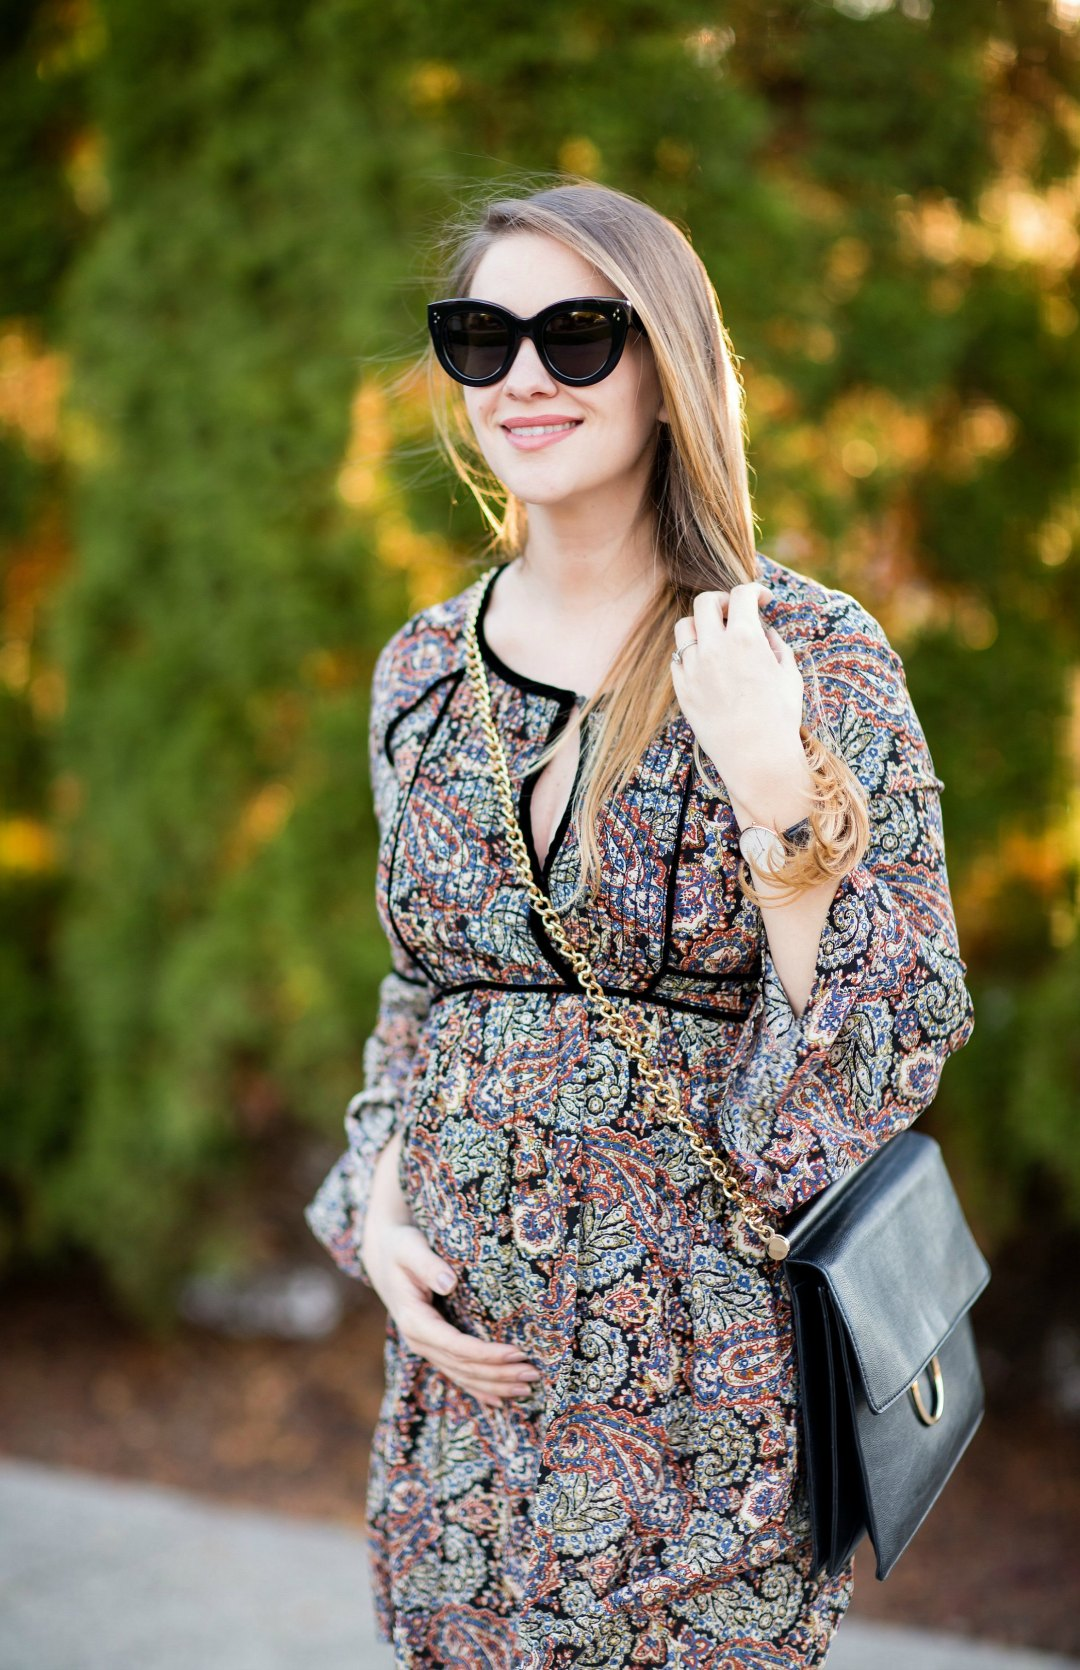 smart-buy-glasses-rose-city-style-guide-fall-sunglasses-trends-blogger-styles-fashion-canadian-celine-tom-ford-sunglasses